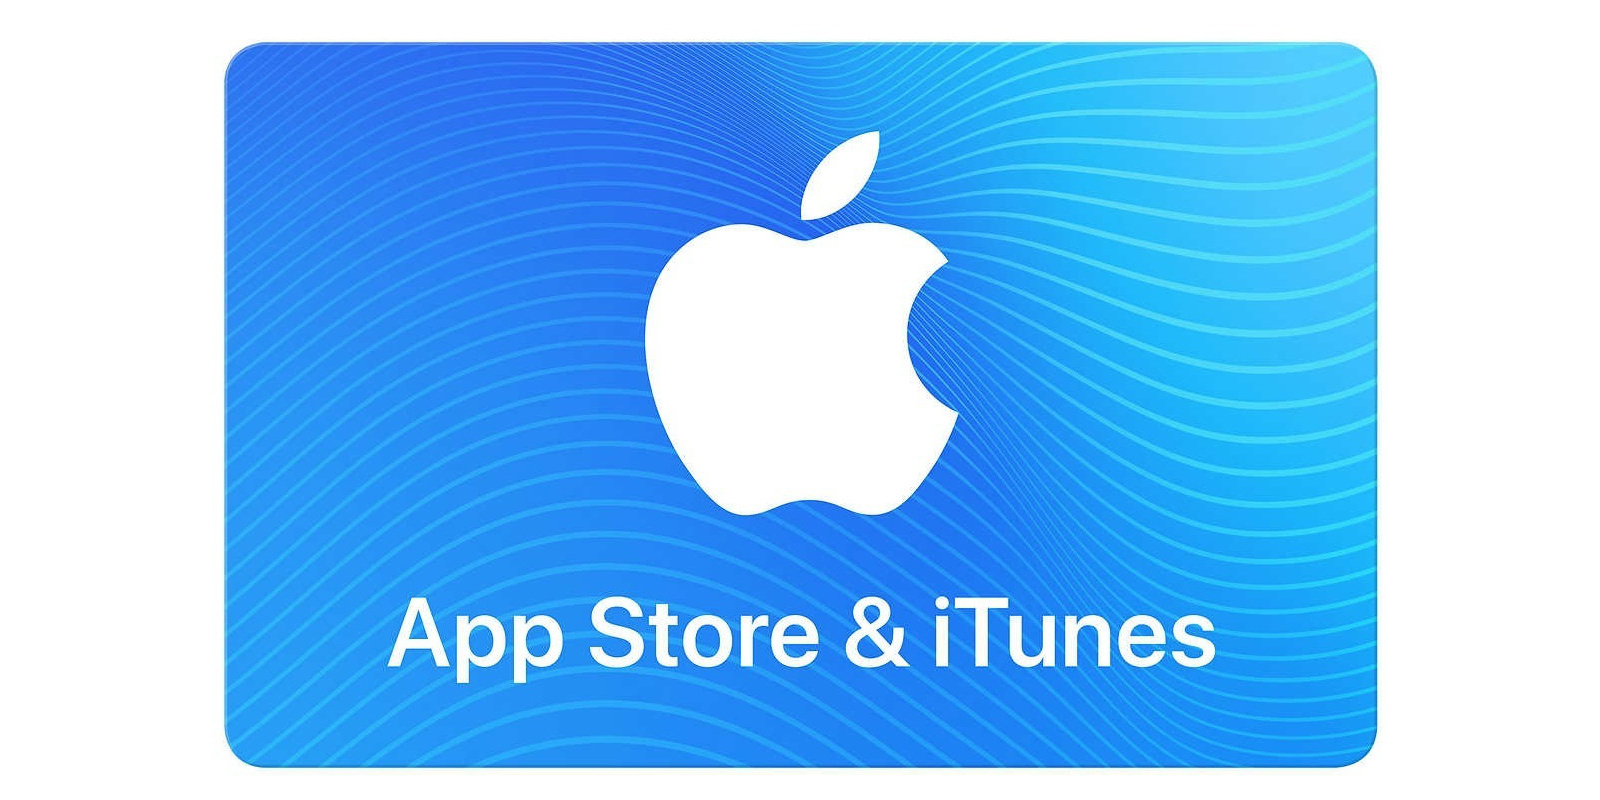 Here's a $50 iTunes gift card for just $42.50 w/ free digital delivery (15% off) + more